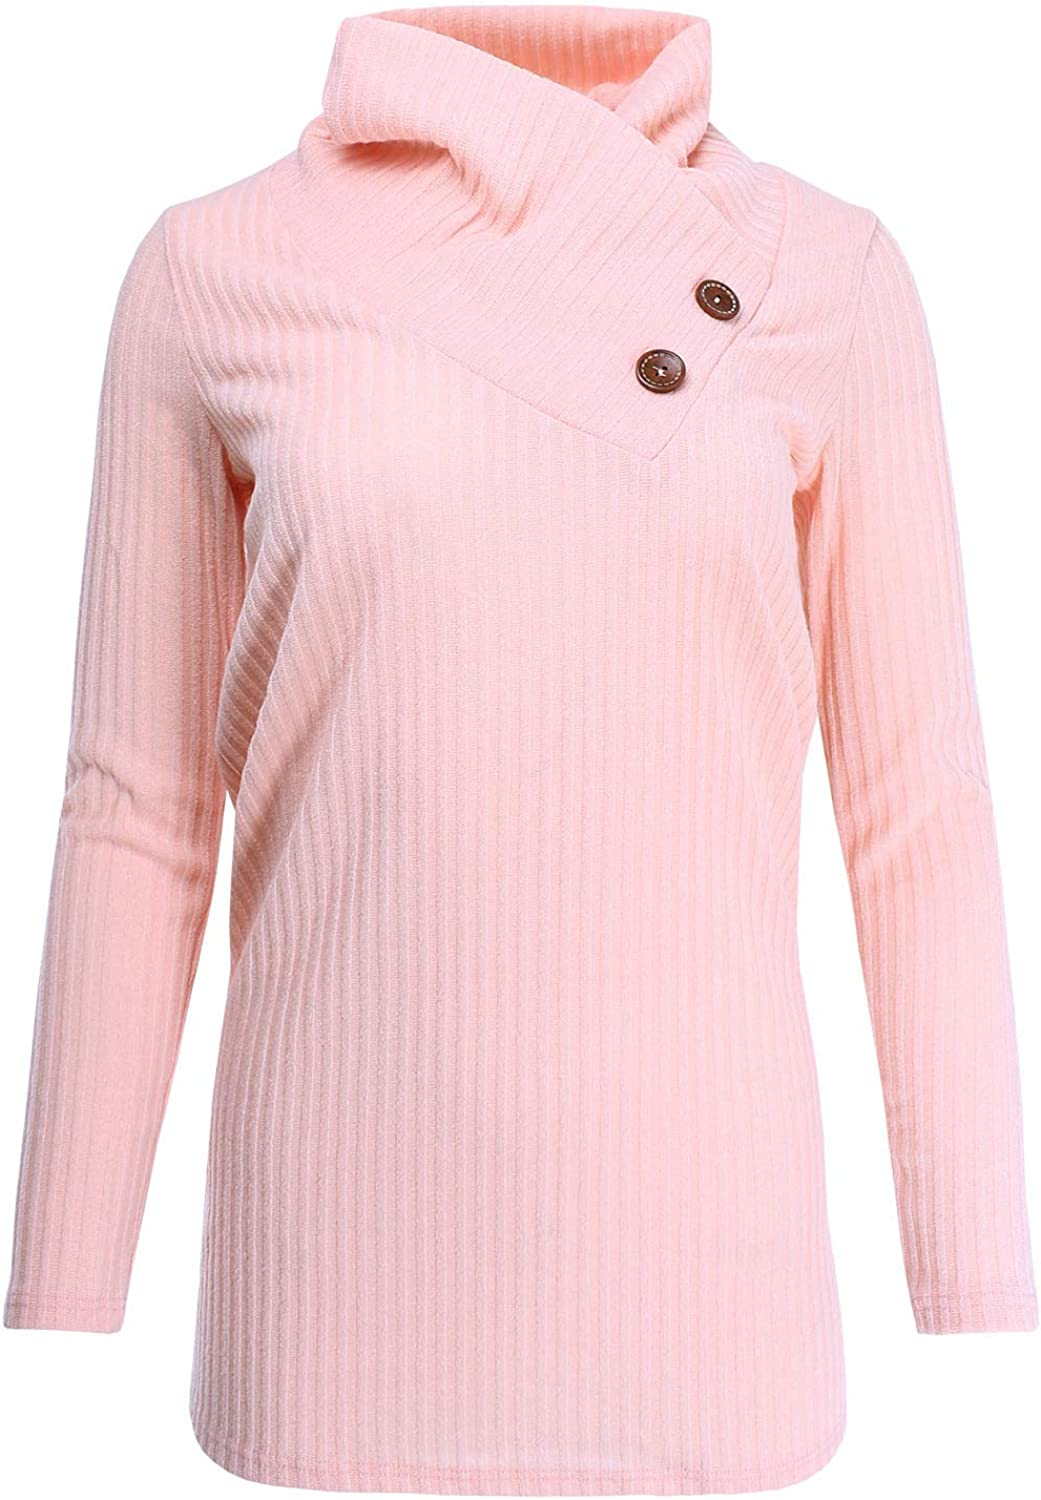 Ladies' Code Women's Cowl Neck Button Detail Ribbed Knit Sweater Top